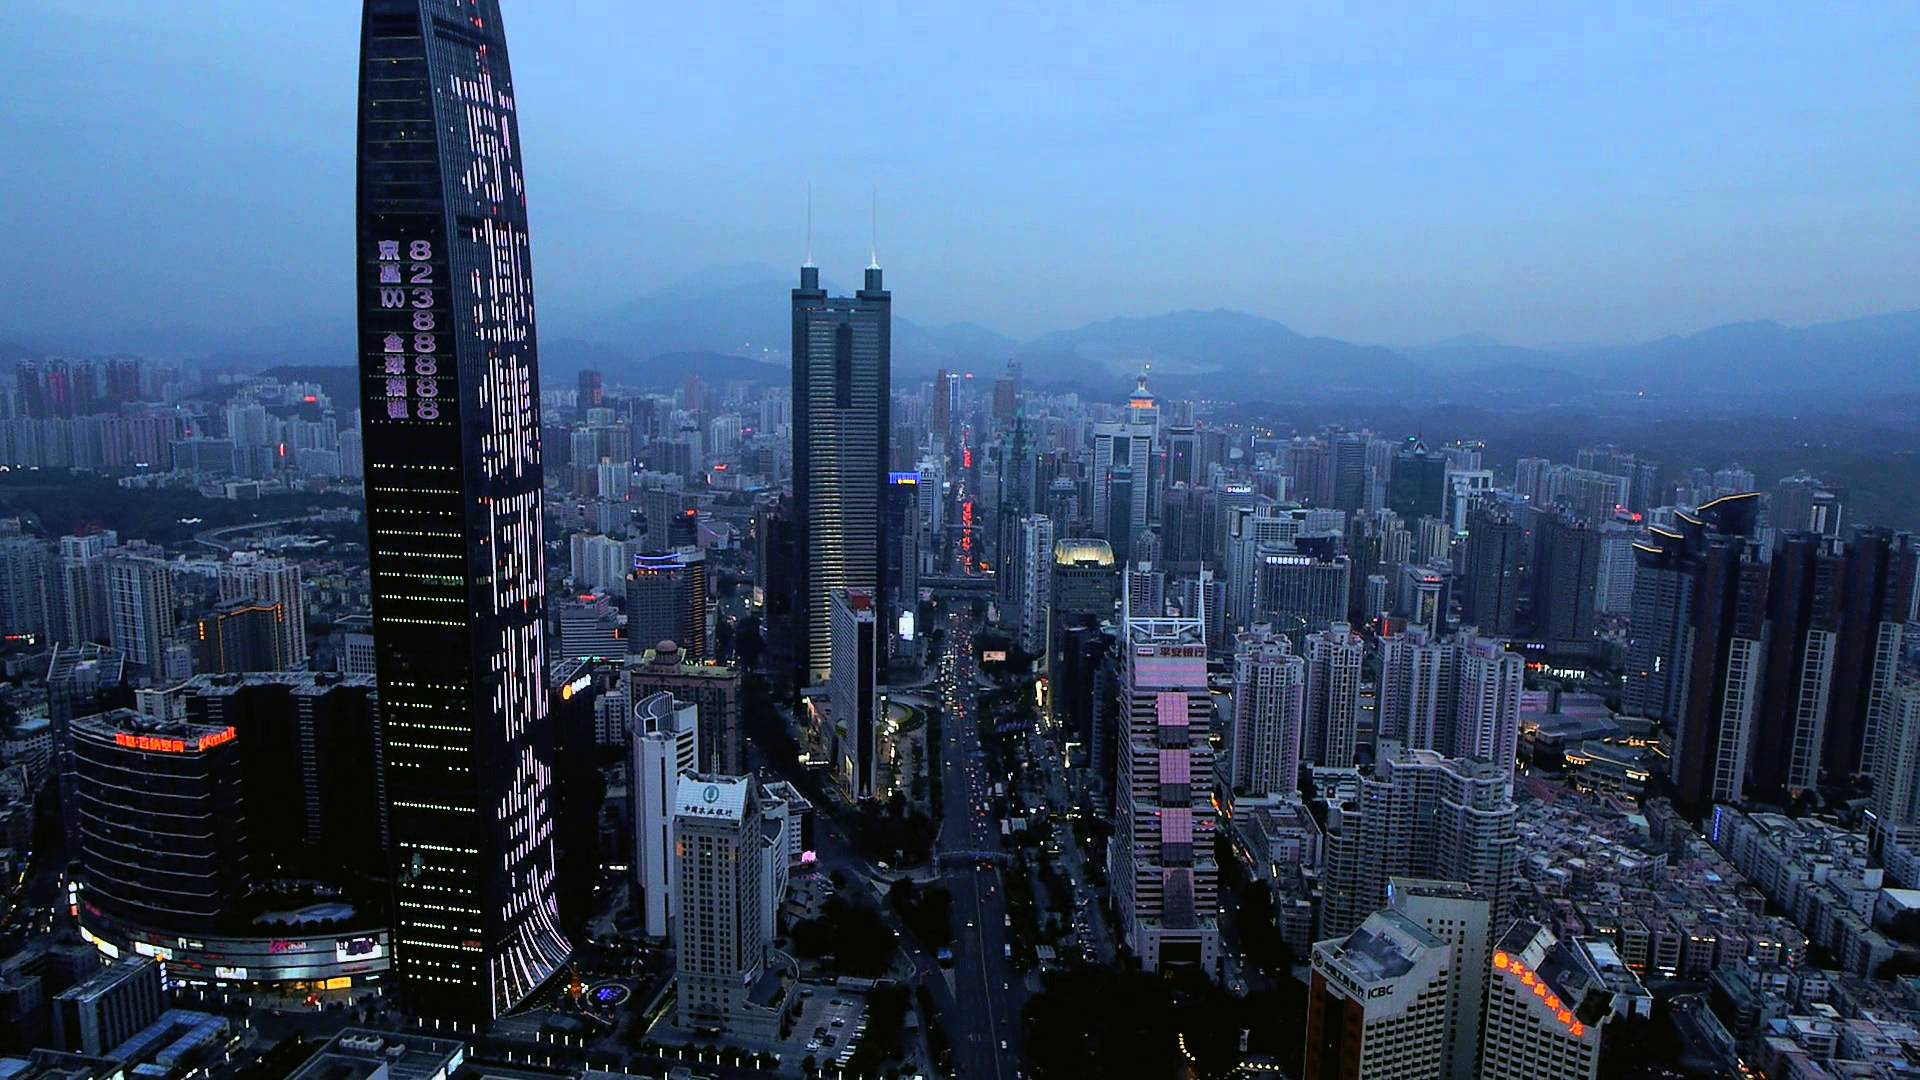 Galaxy Holdings, Puji Capital announces joint venture platform to back foreign businesses in Shenzhen